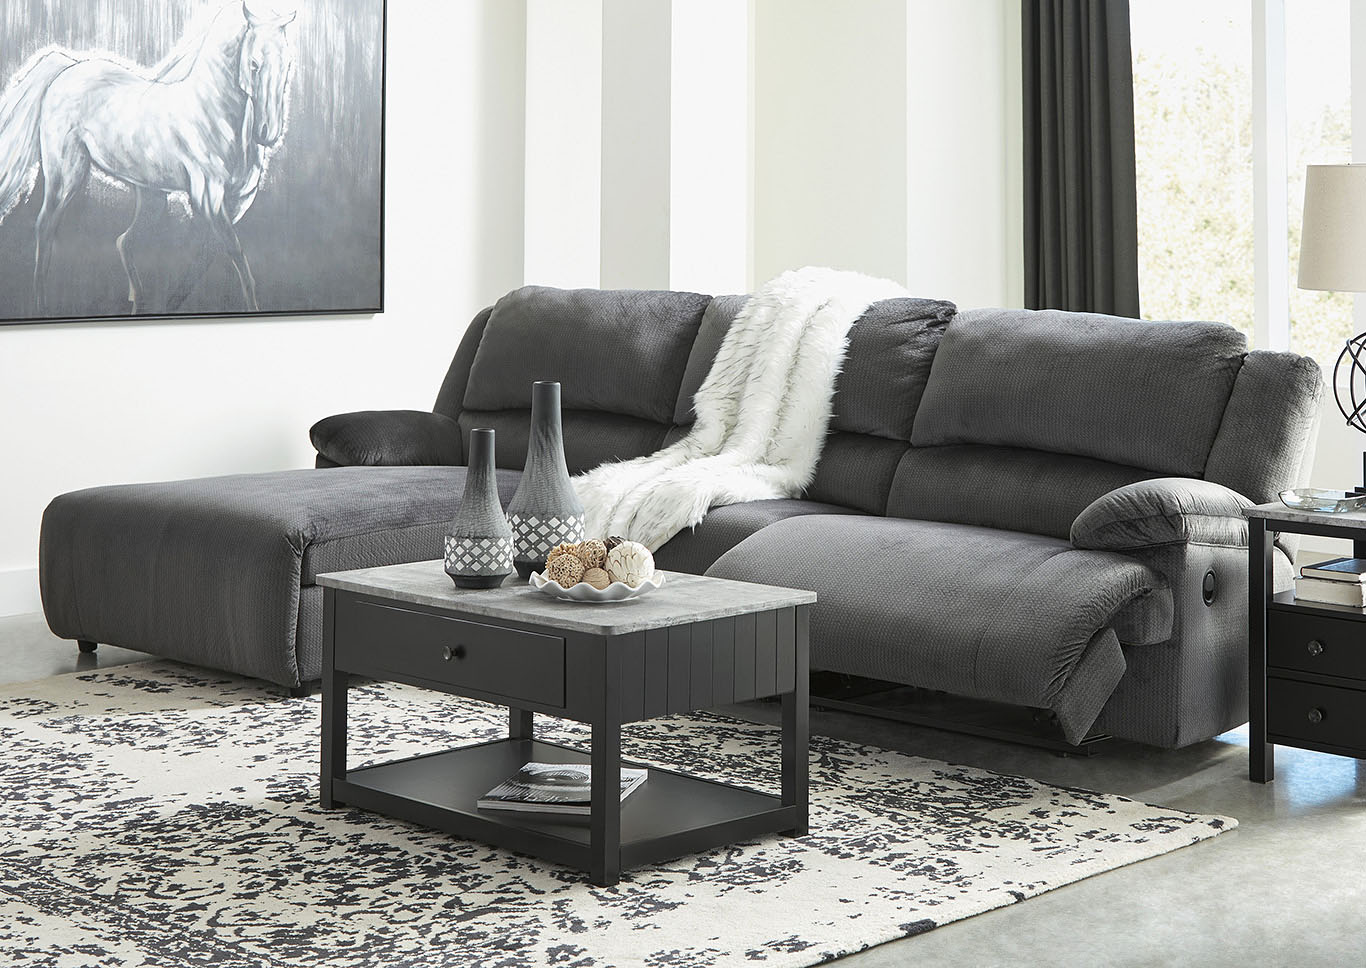 Clonmel Charcoal 3 Piece LAF Power Chaise Sectional,Signature Design By Ashley